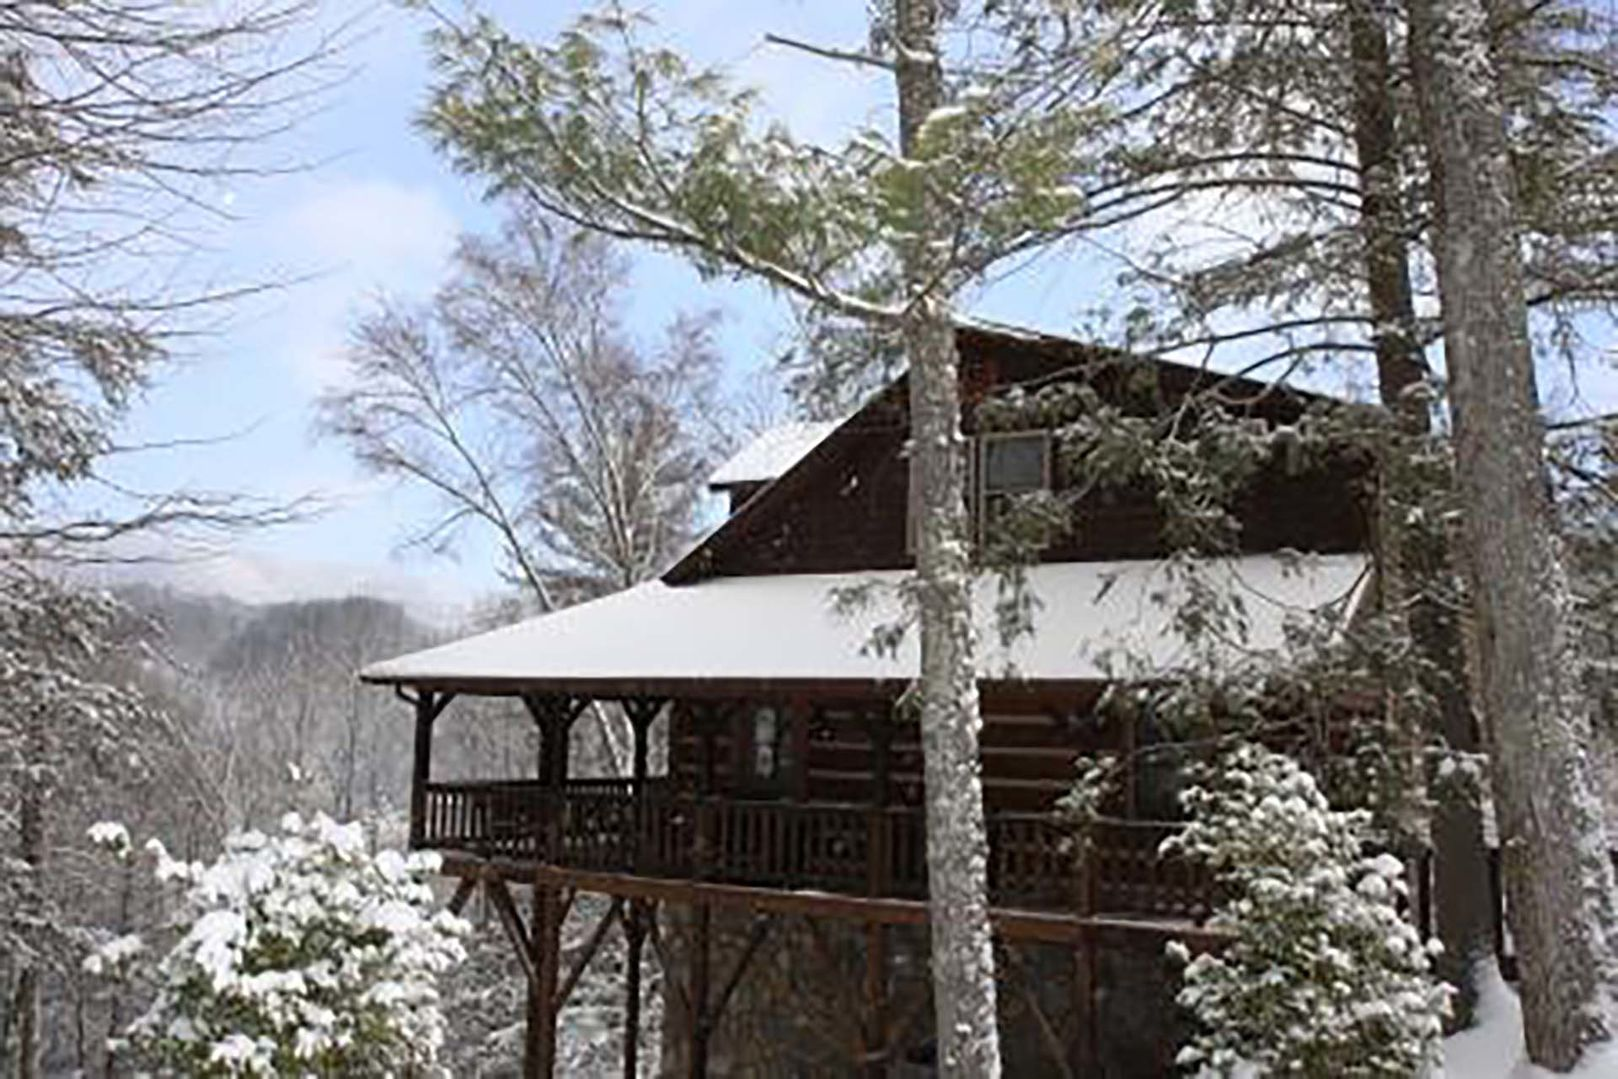 Side view of the home during the winter